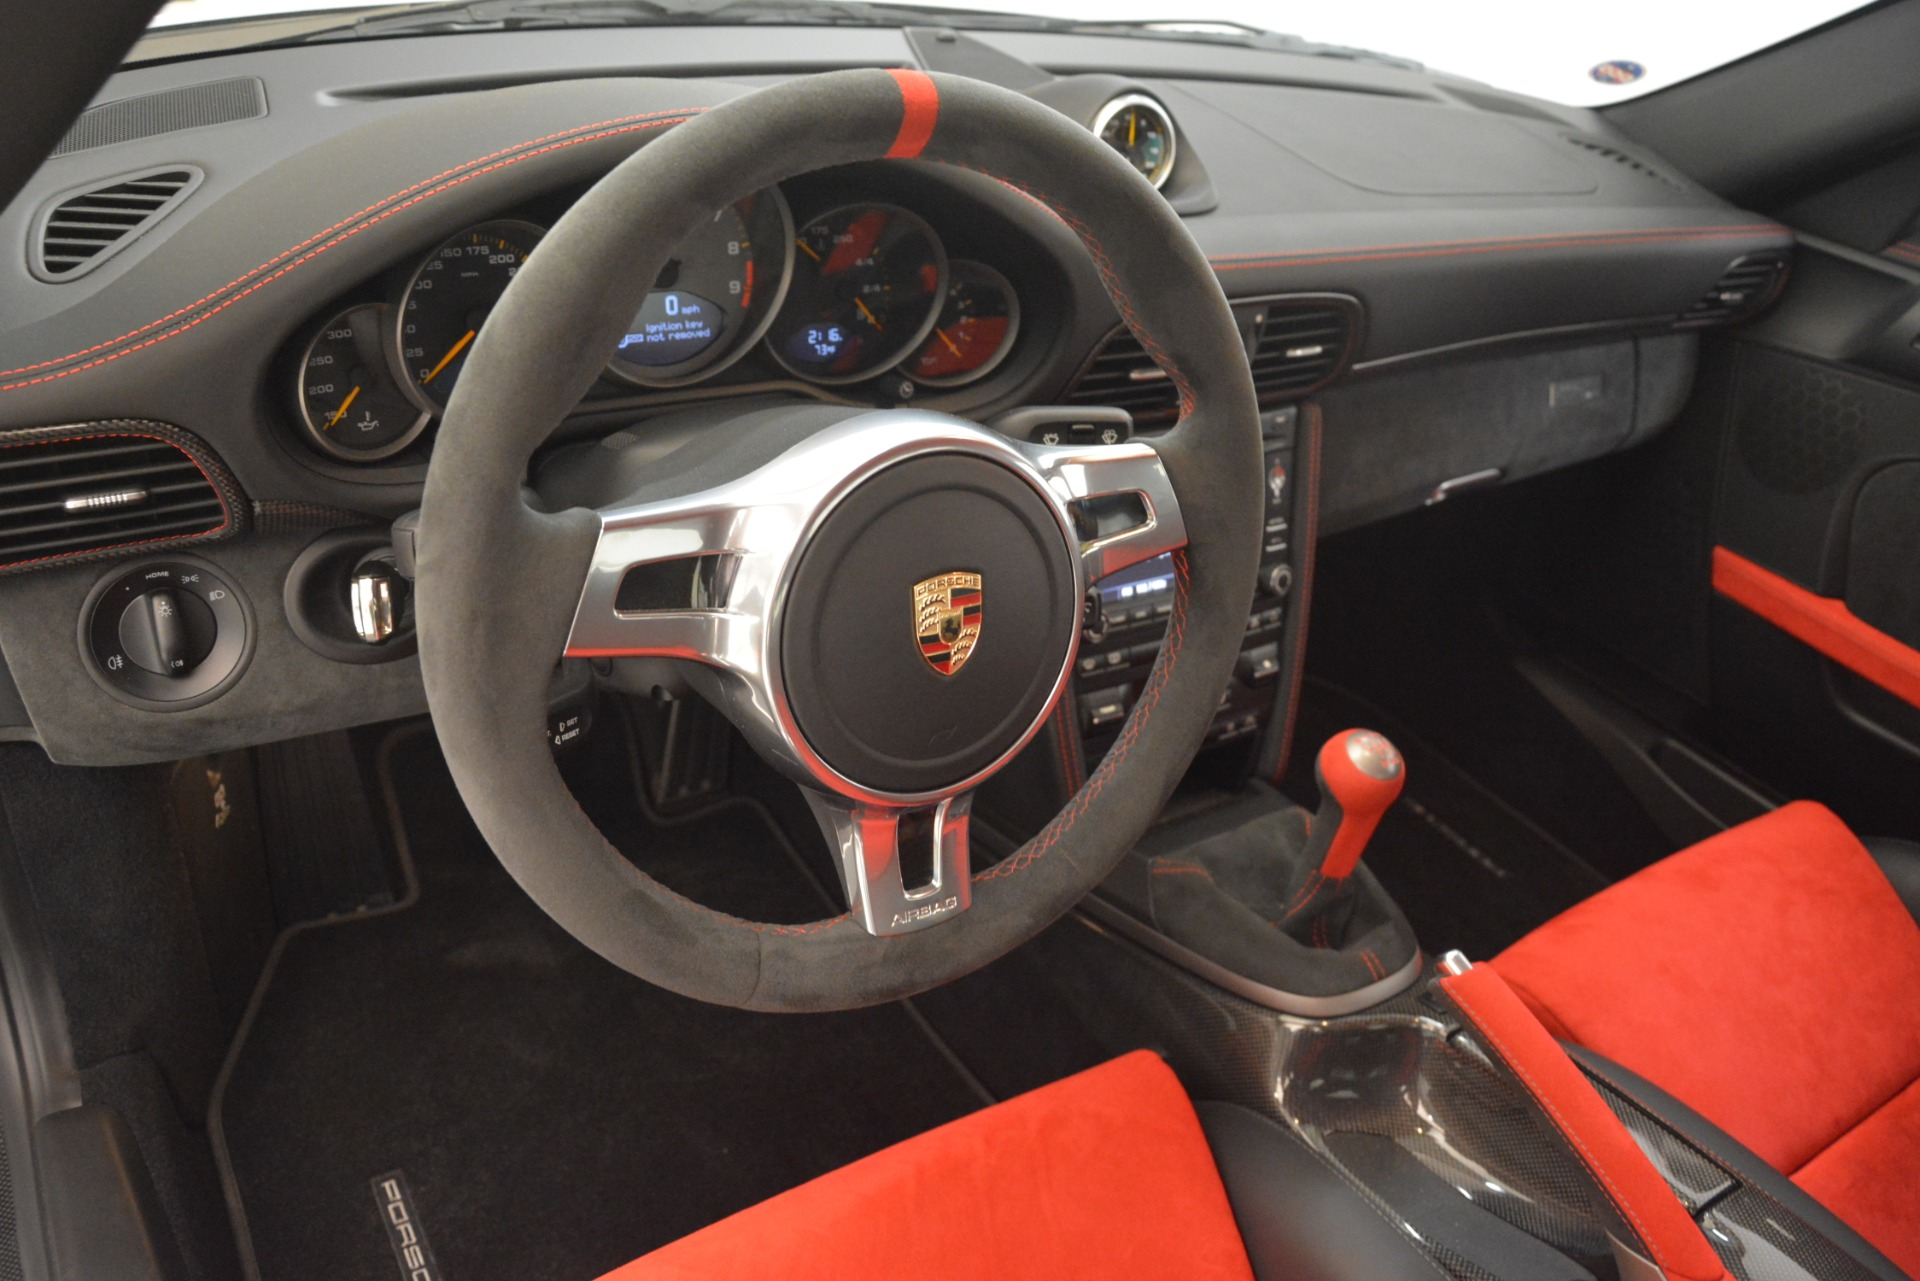 Used 2011 Porsche 911 GT3 RS 4.0 For Sale In Westport, CT 3188_p17